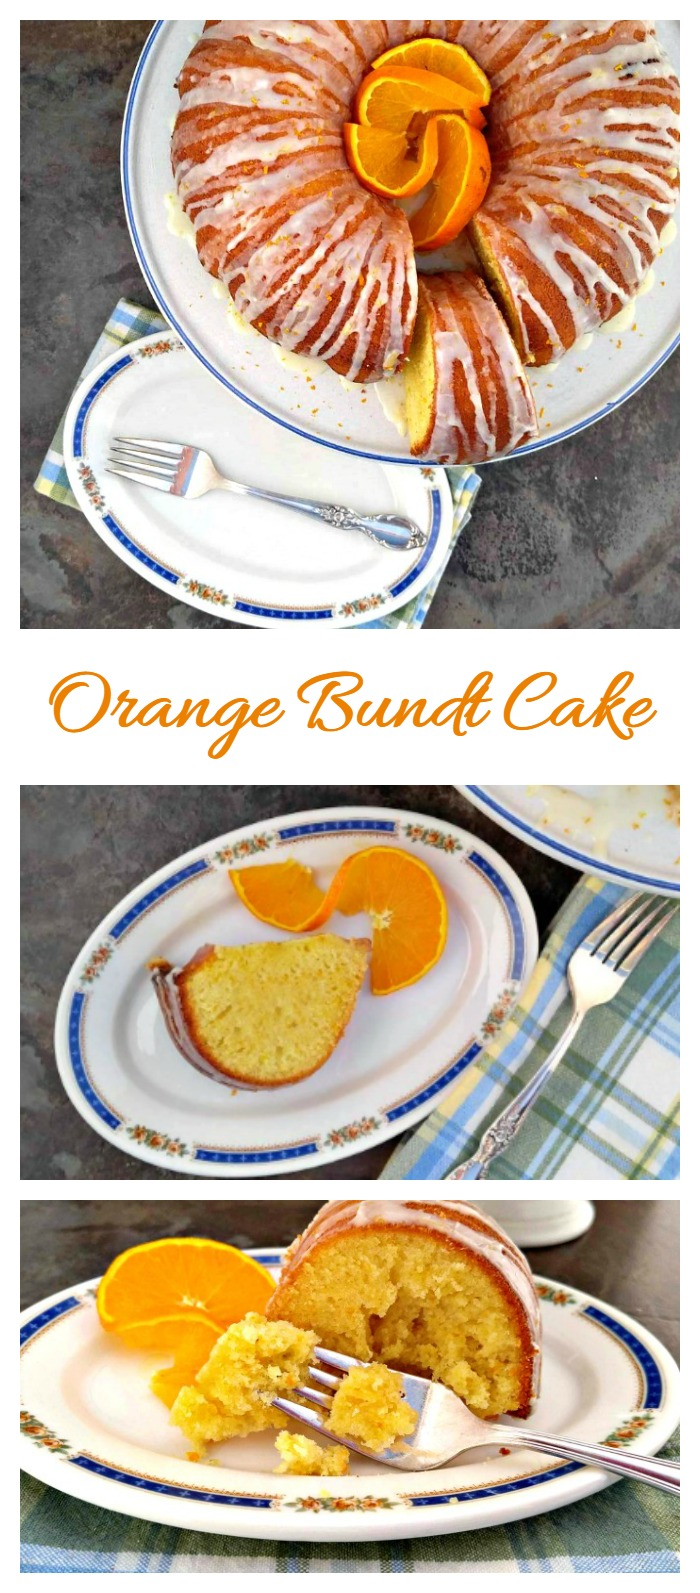 This orange bundt cake has a fresh citrus taste and a creamy orange glaze.